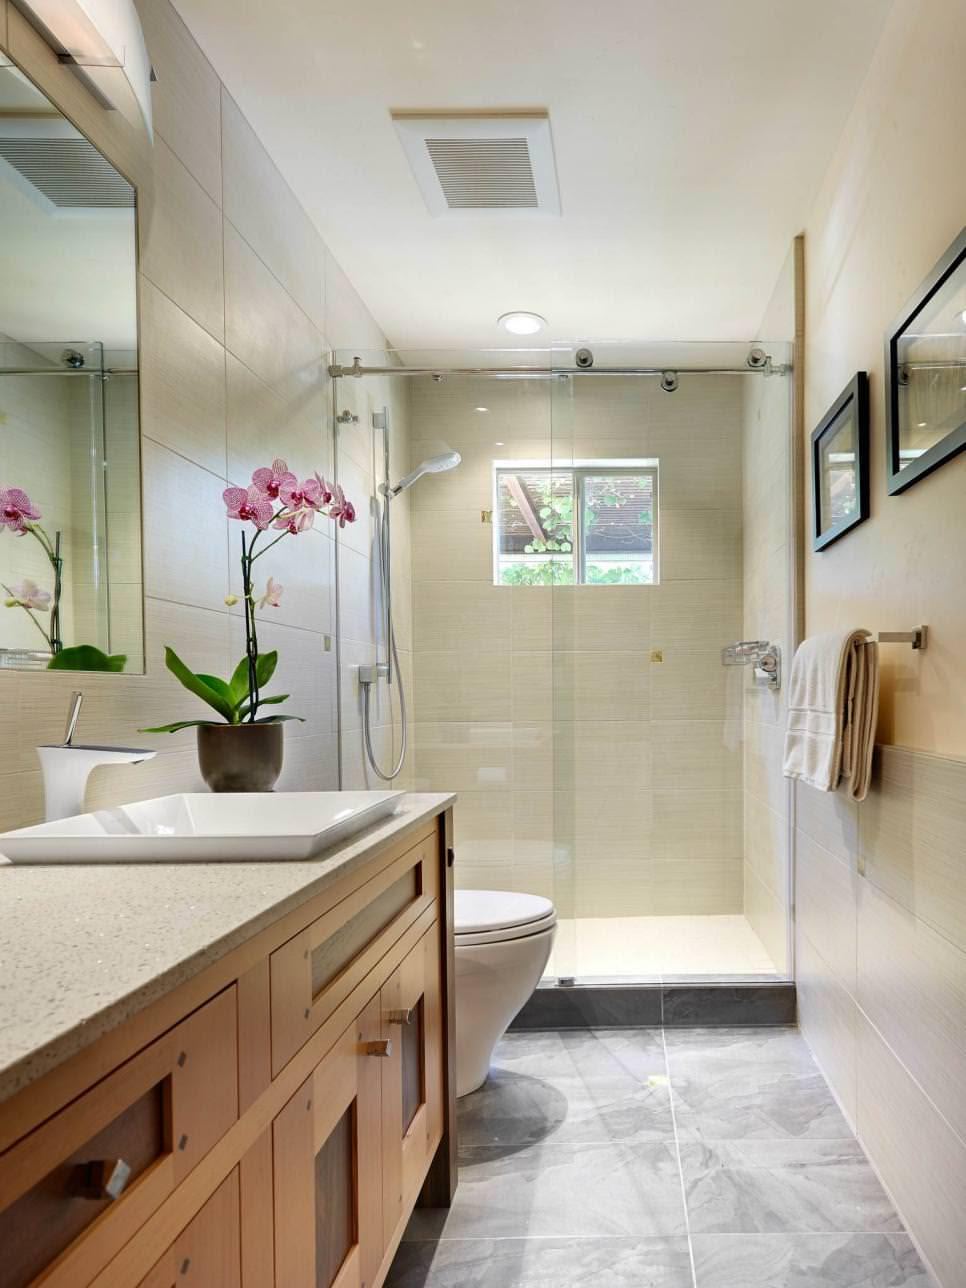 25+ Narrow Bathroom Designs, Decorating Ideas | Design Trends